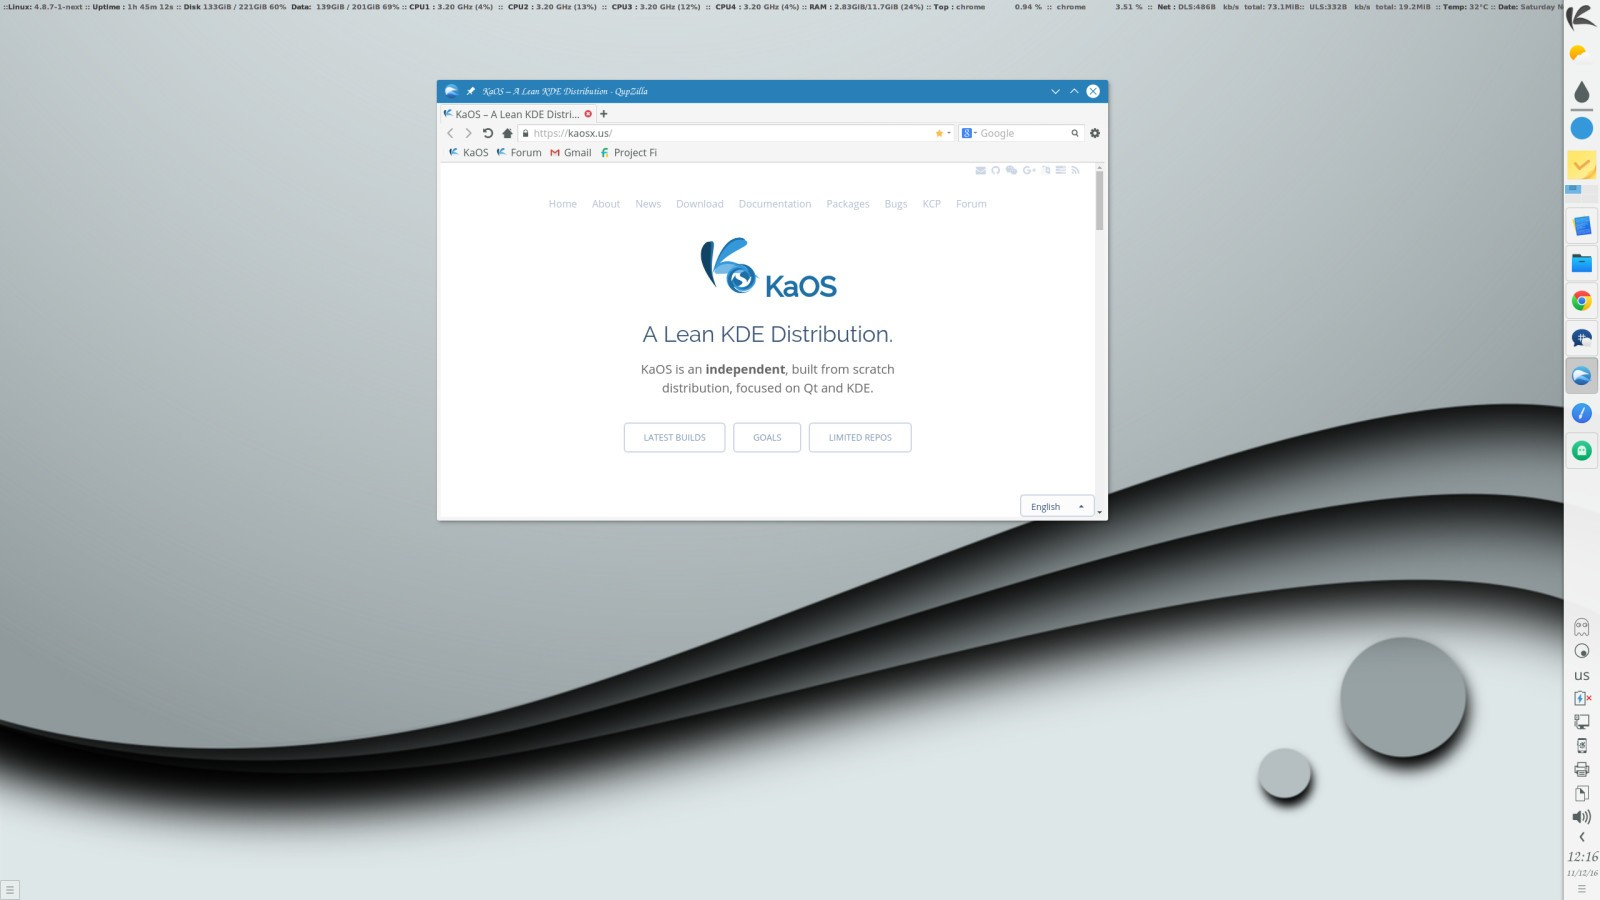 Kaos Linux Starts The New Year With A Fresh Look First Iso For 2 201701